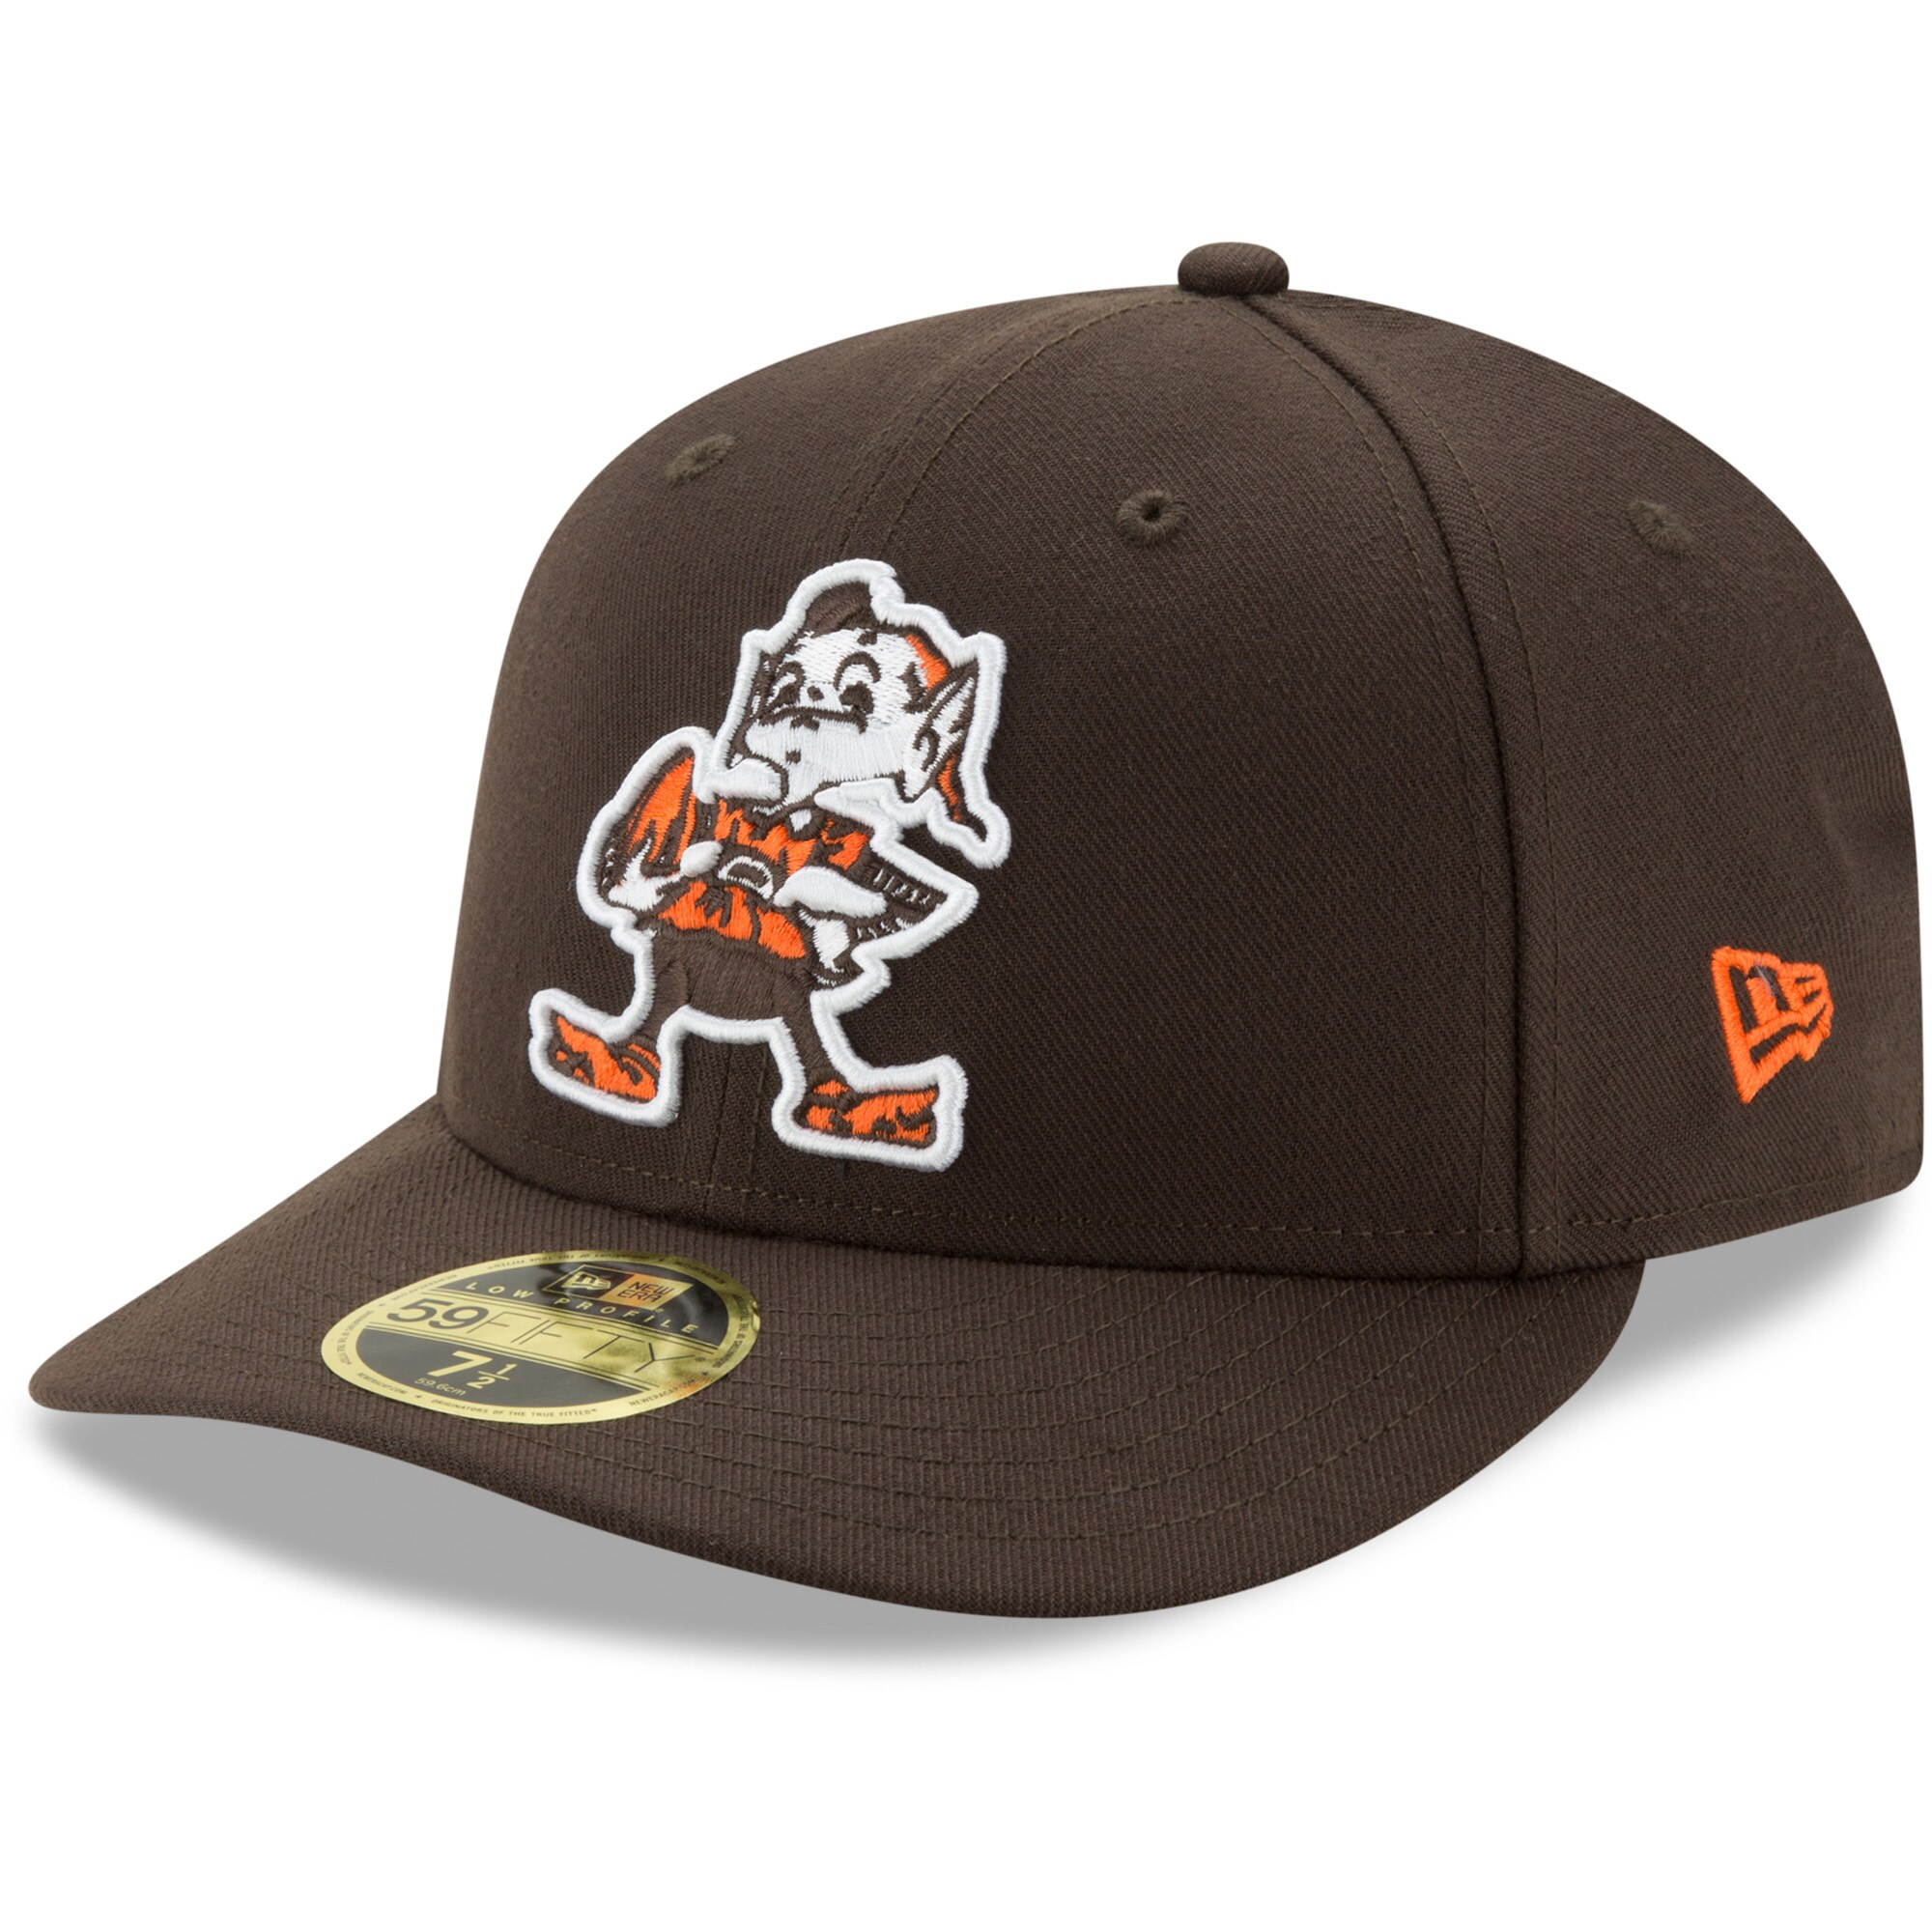 Cleveland Browns New Era Brownie Omaha Throwback Low Profile 59FIFTY Fitted Hat - Brown